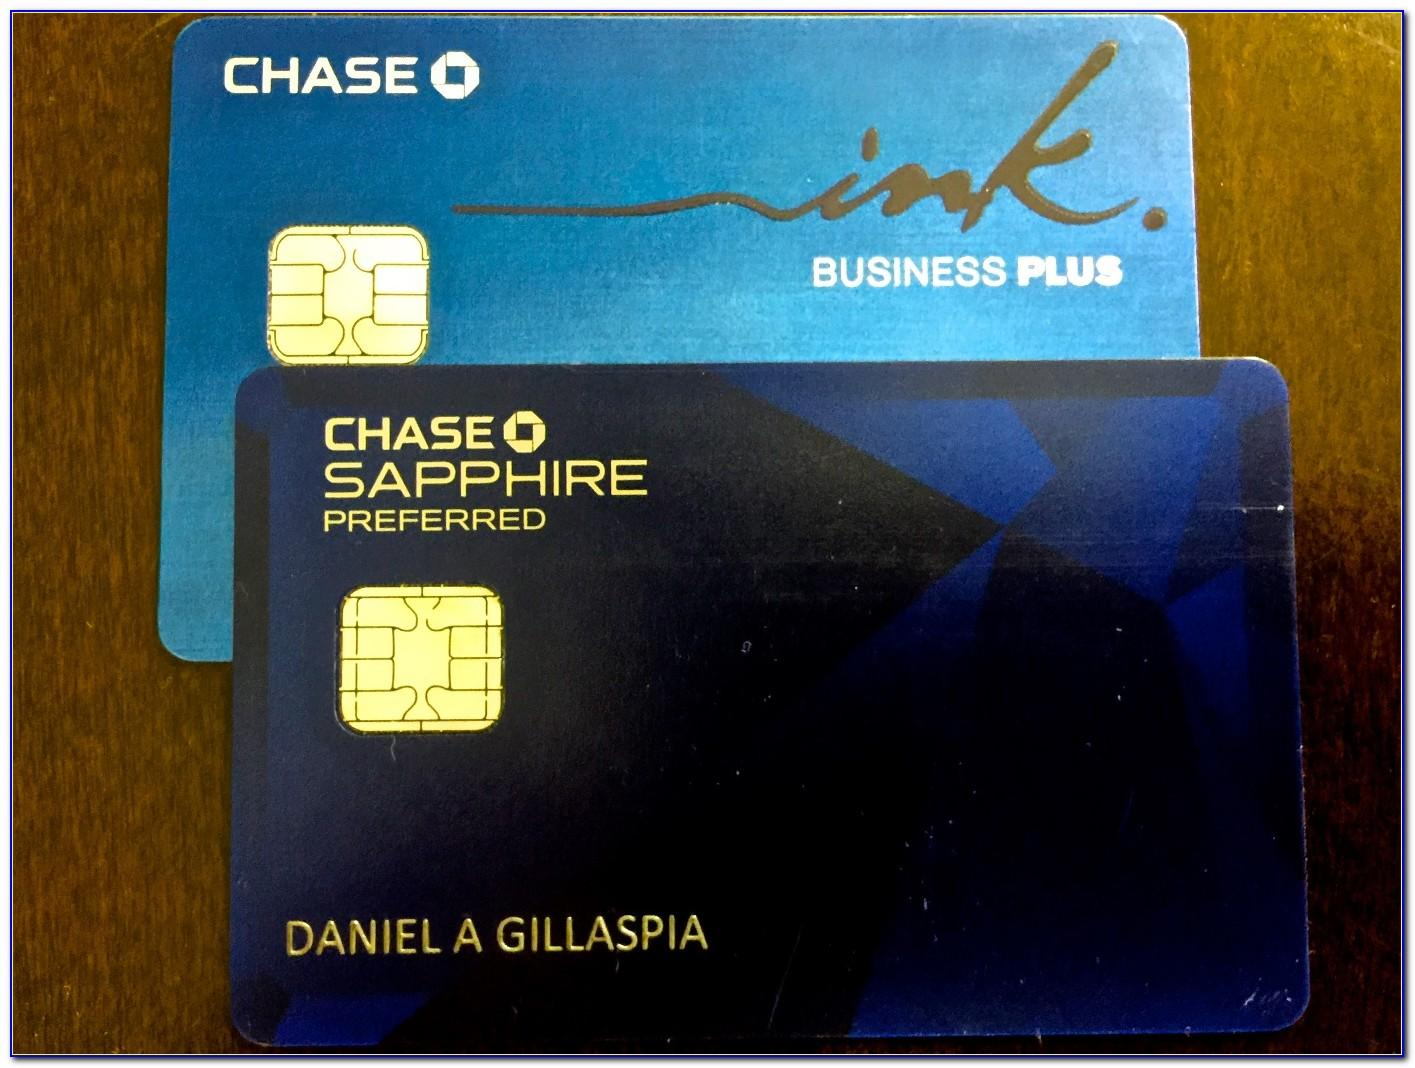 Chase United Business Club Card